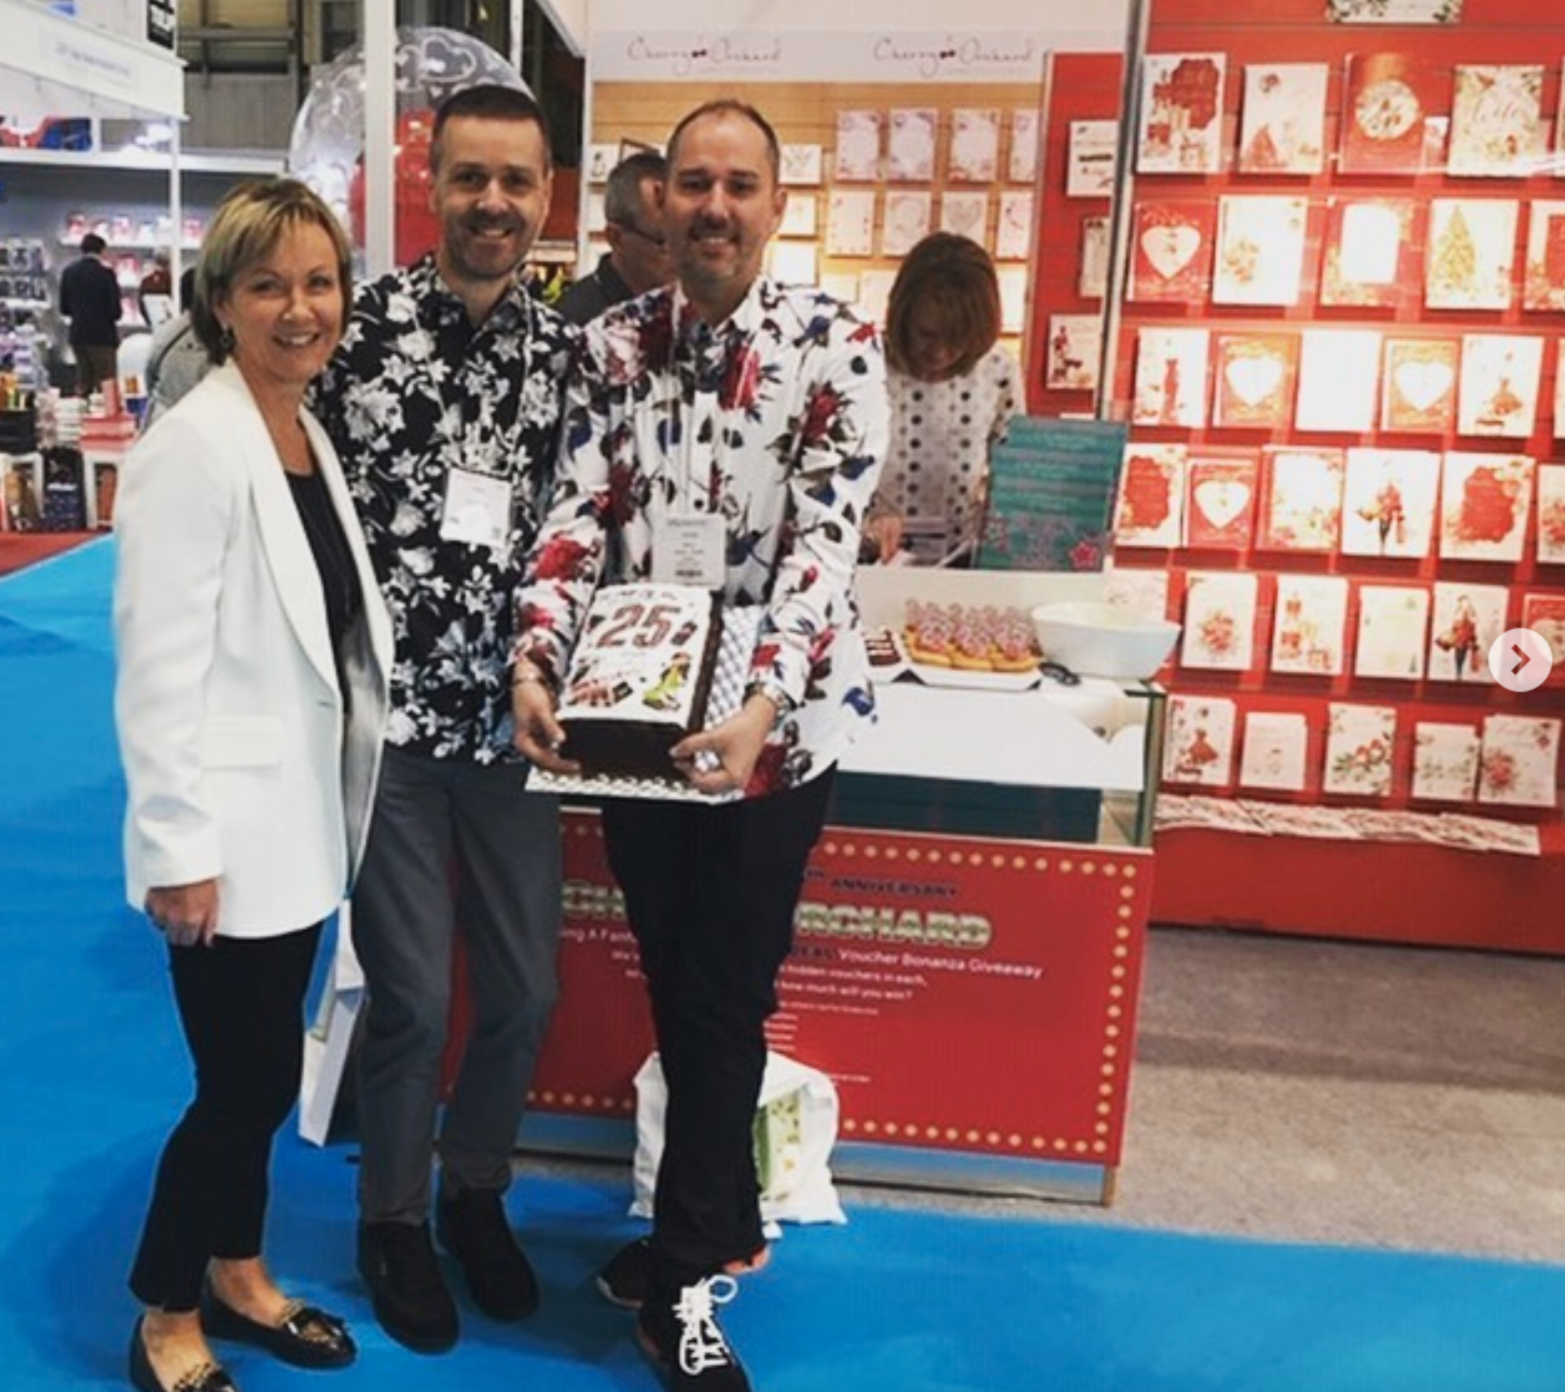 Above: Jackie Collins, md and owner of Cherry Orchard Publishing with a 25thanniversary cake that she was presented with Carl Dunne (centre) and Oliver Guise-Smith of Cards & Gifts, Sheffield at the recent Spring Fair.